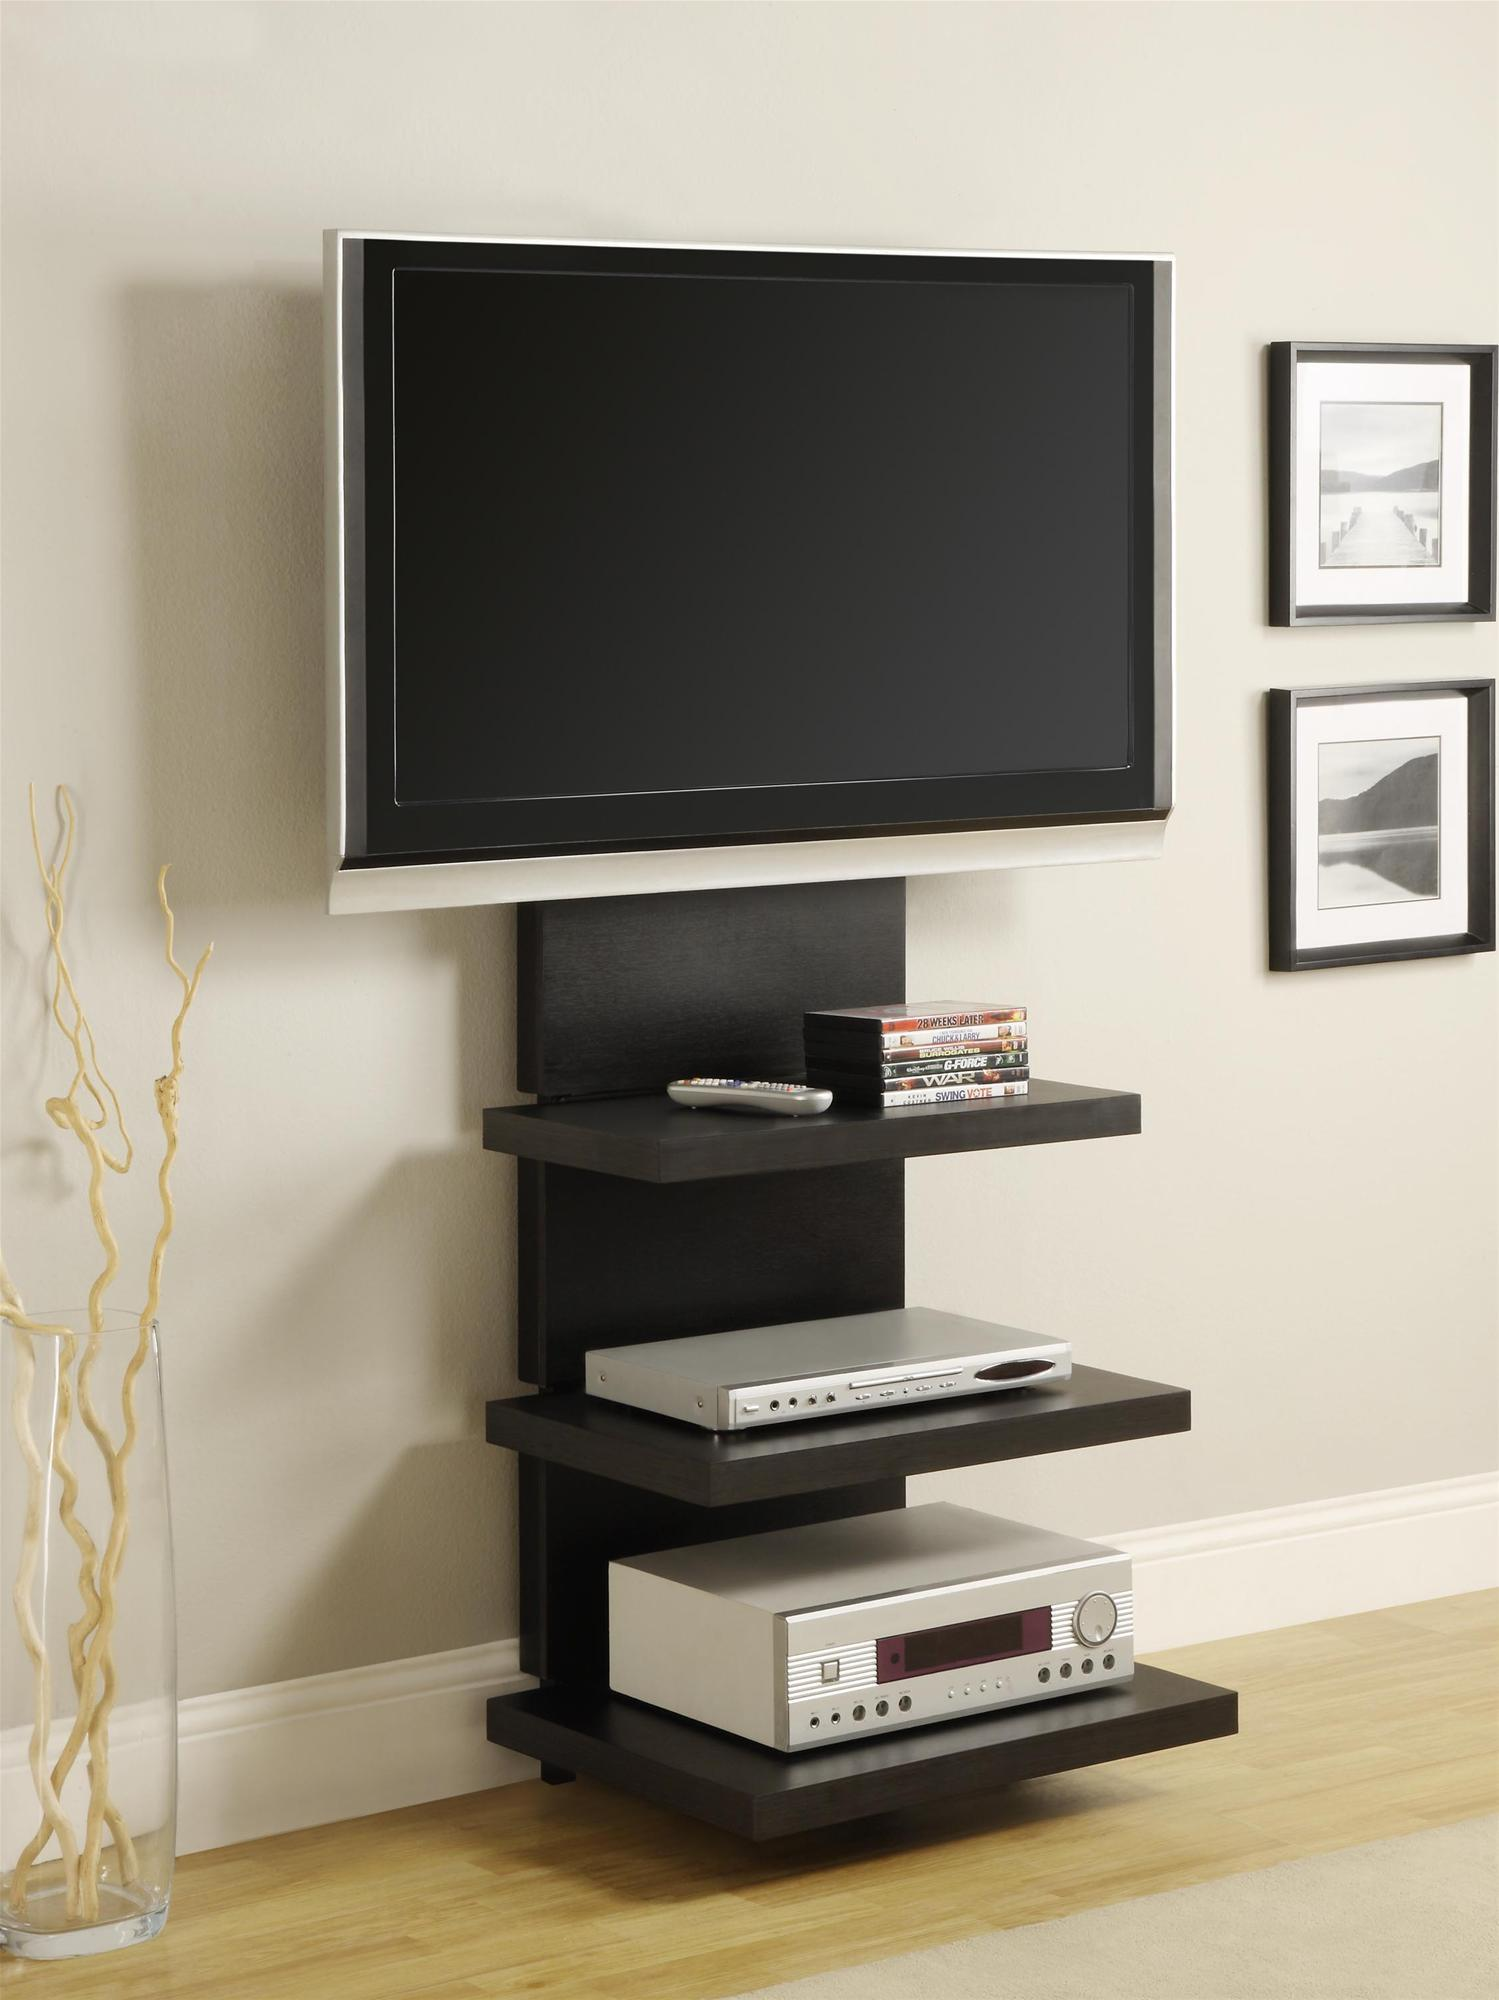 Wall Mount TV Stand with 3 Shelves, Black, for TVs up to 60